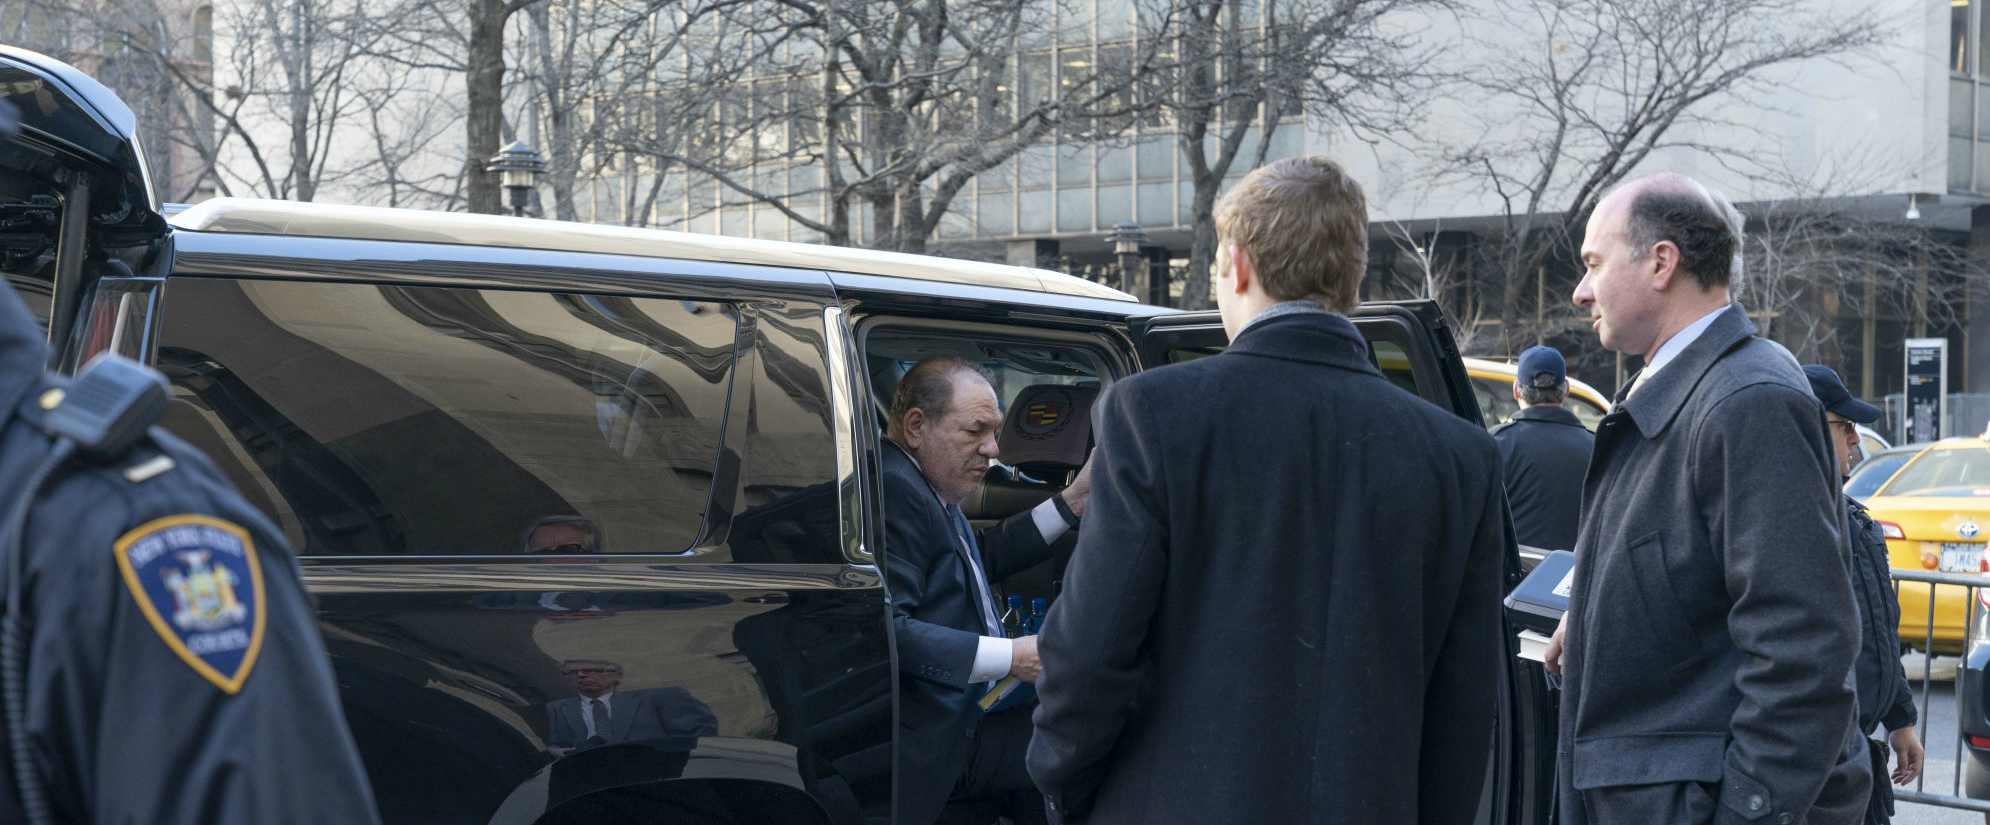 Harvey Weinstein arrives at New York City Supreme Court on February 24, 2020 in New York, United States